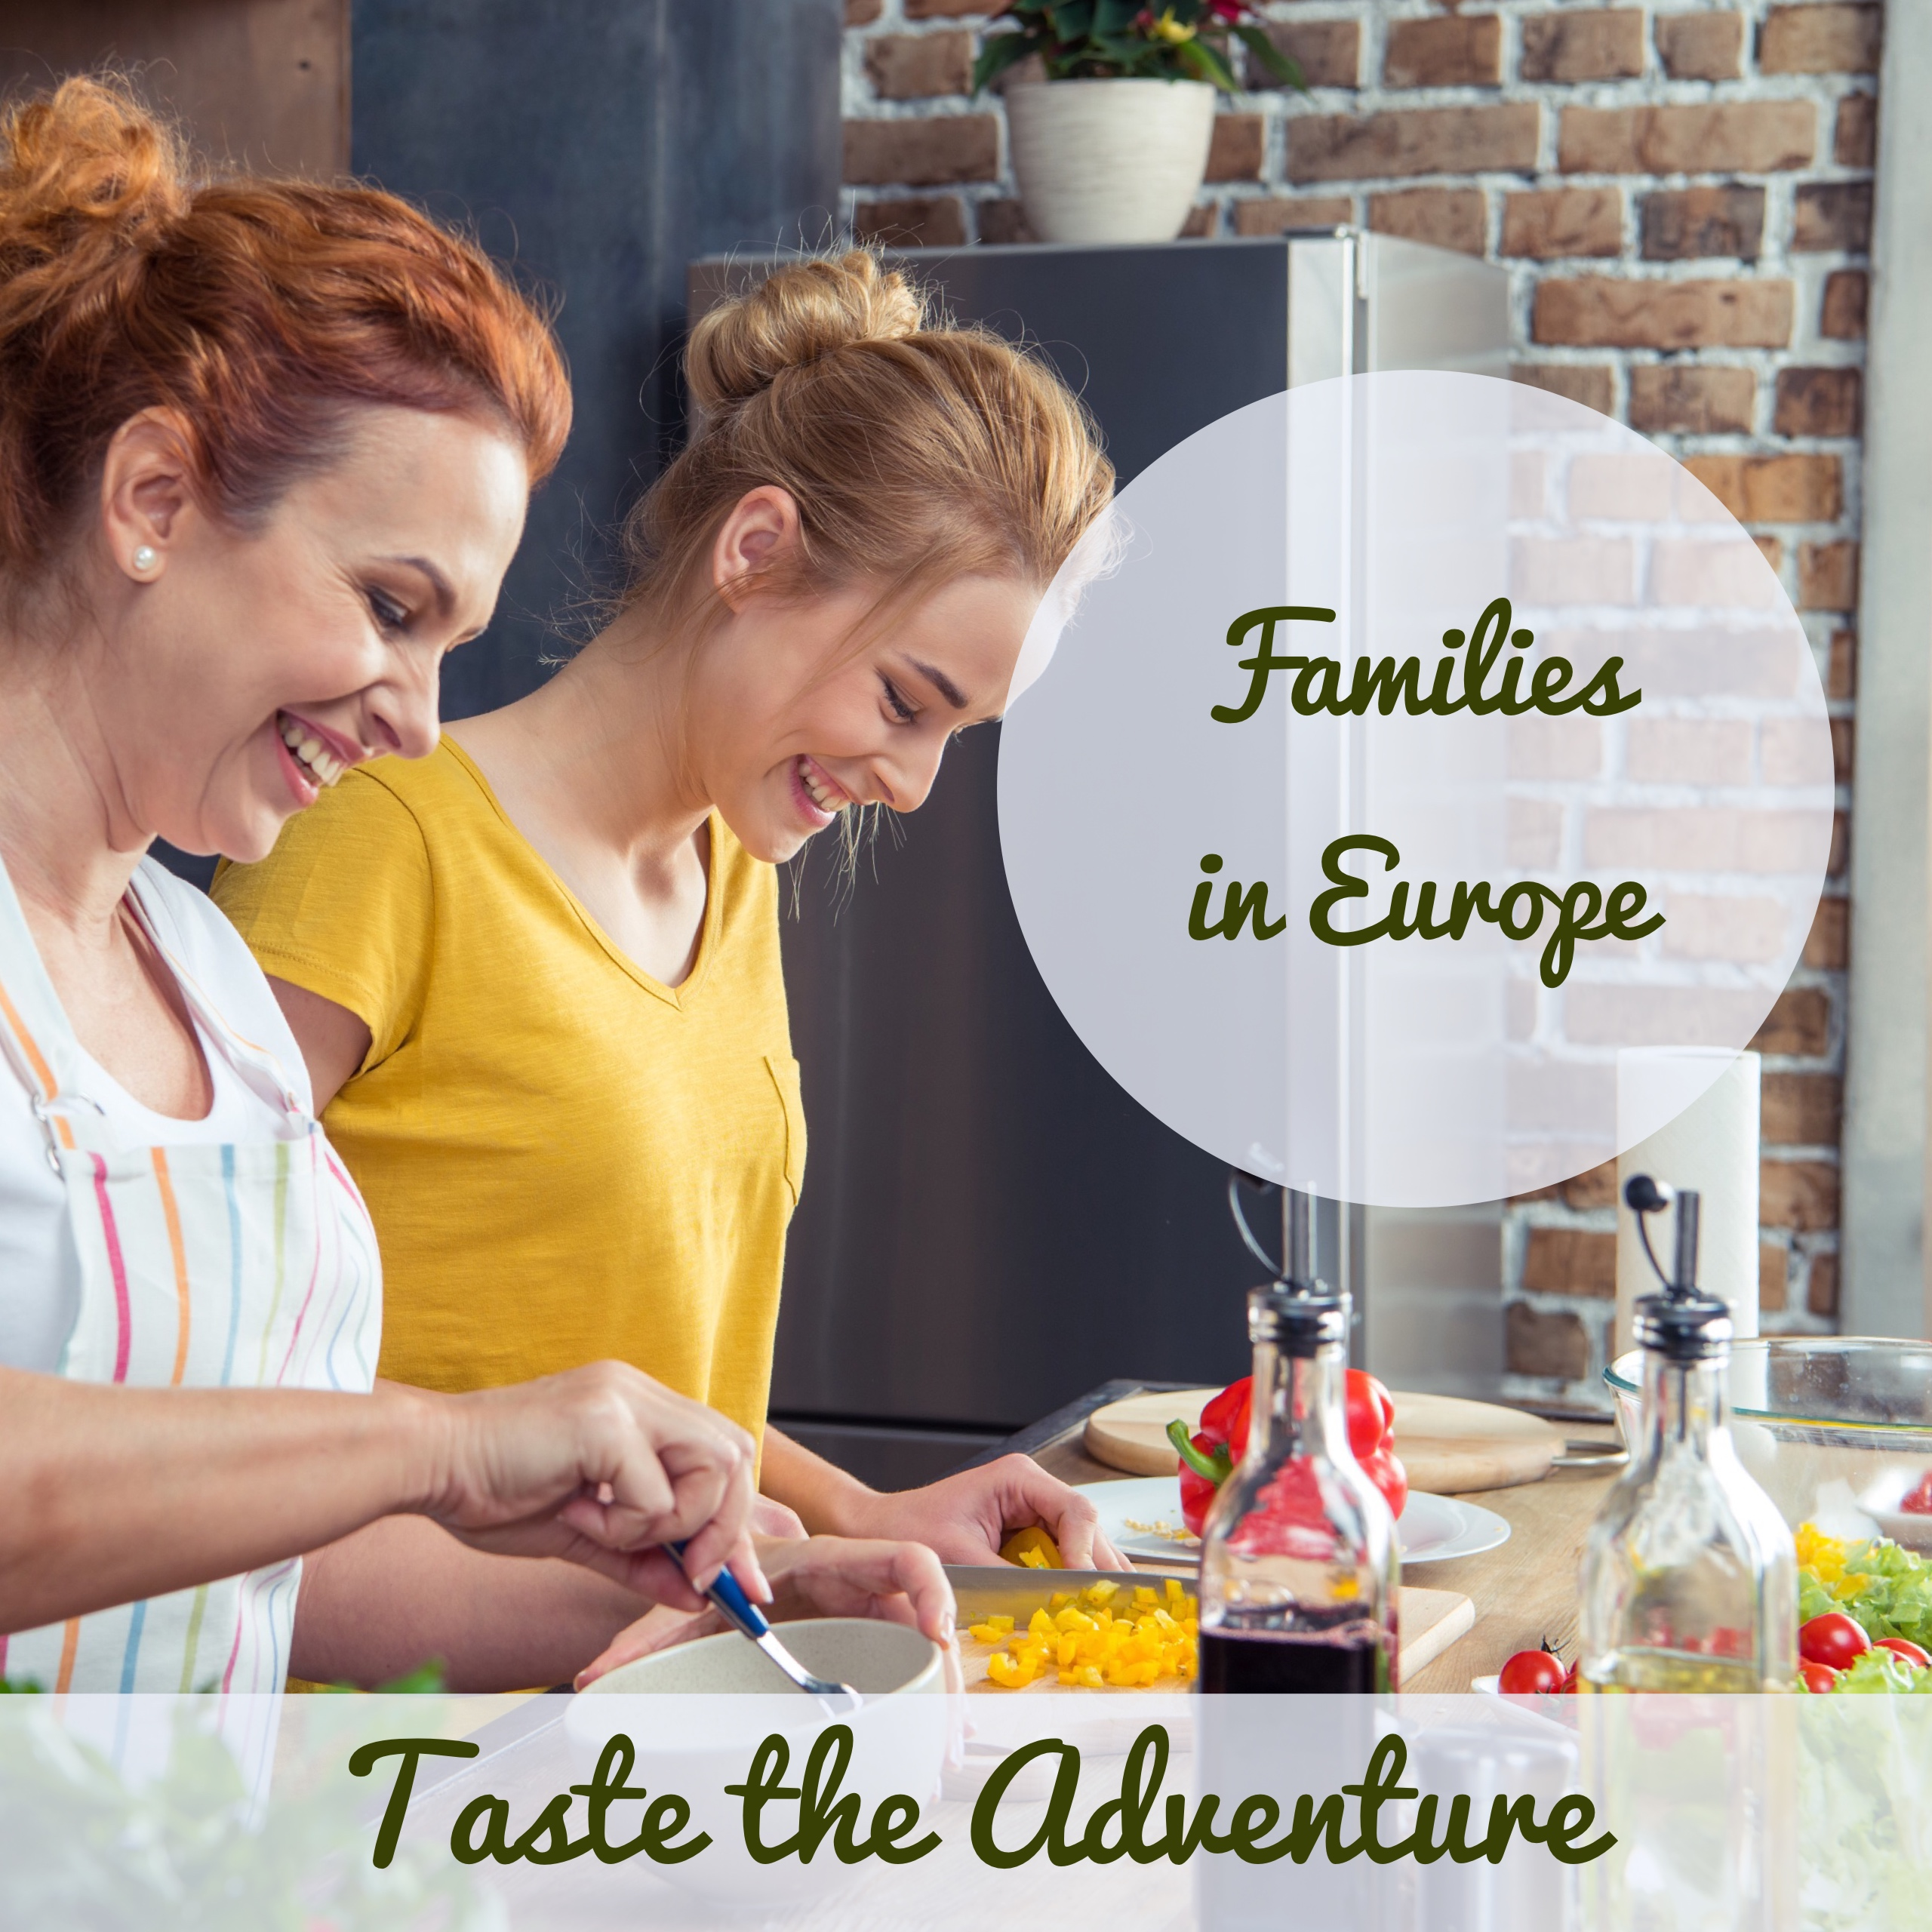 Learn about our Adventures in Europe for Families!